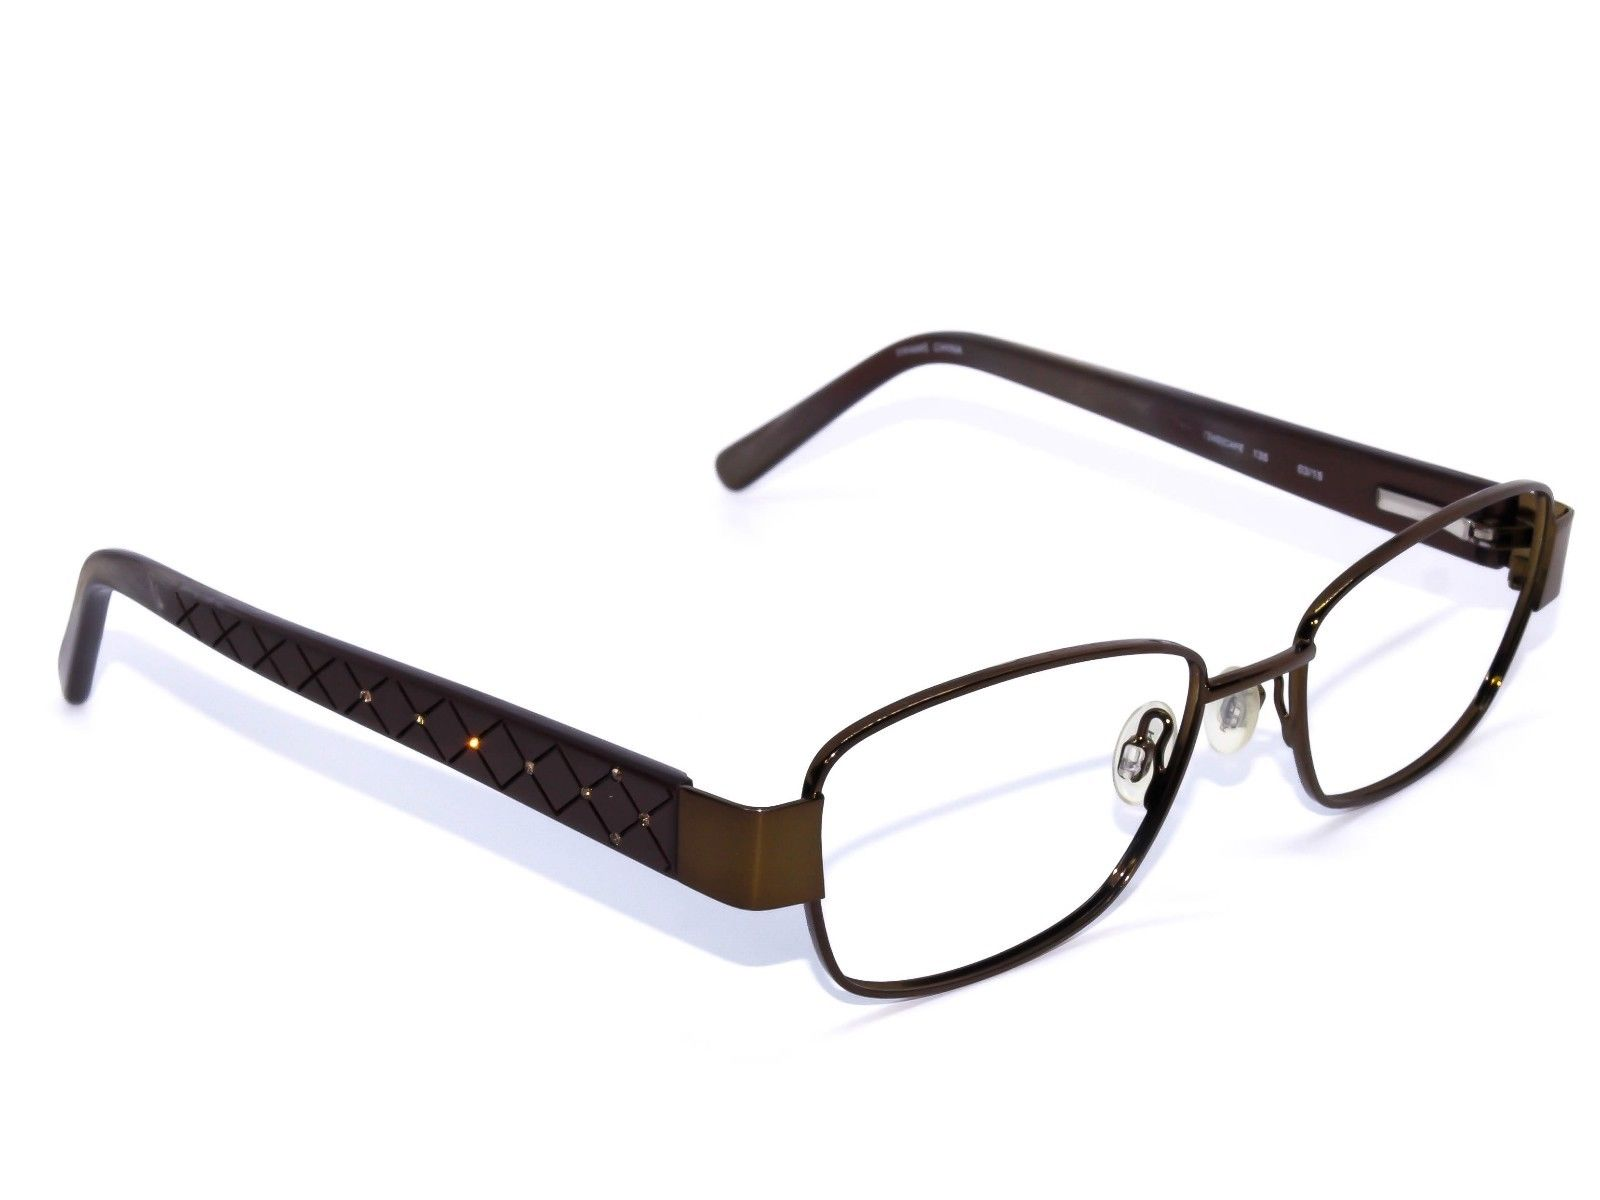 Revlon 249 Cafe Eyeglasses